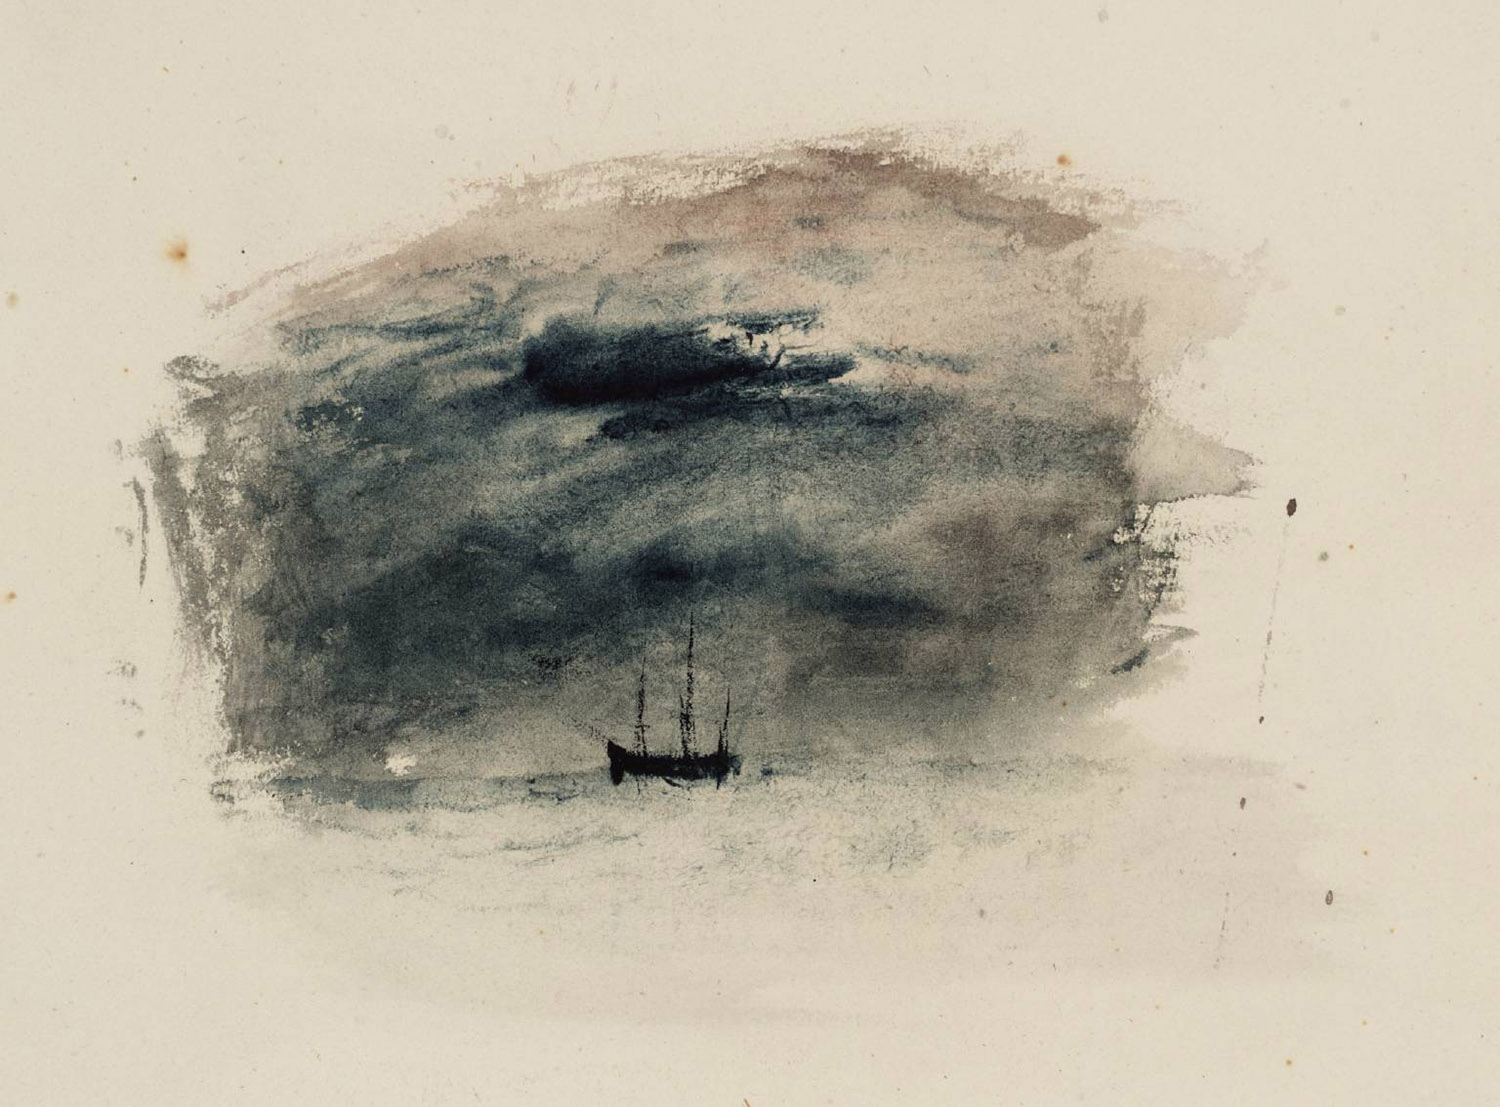 William Turner - The Black Boat